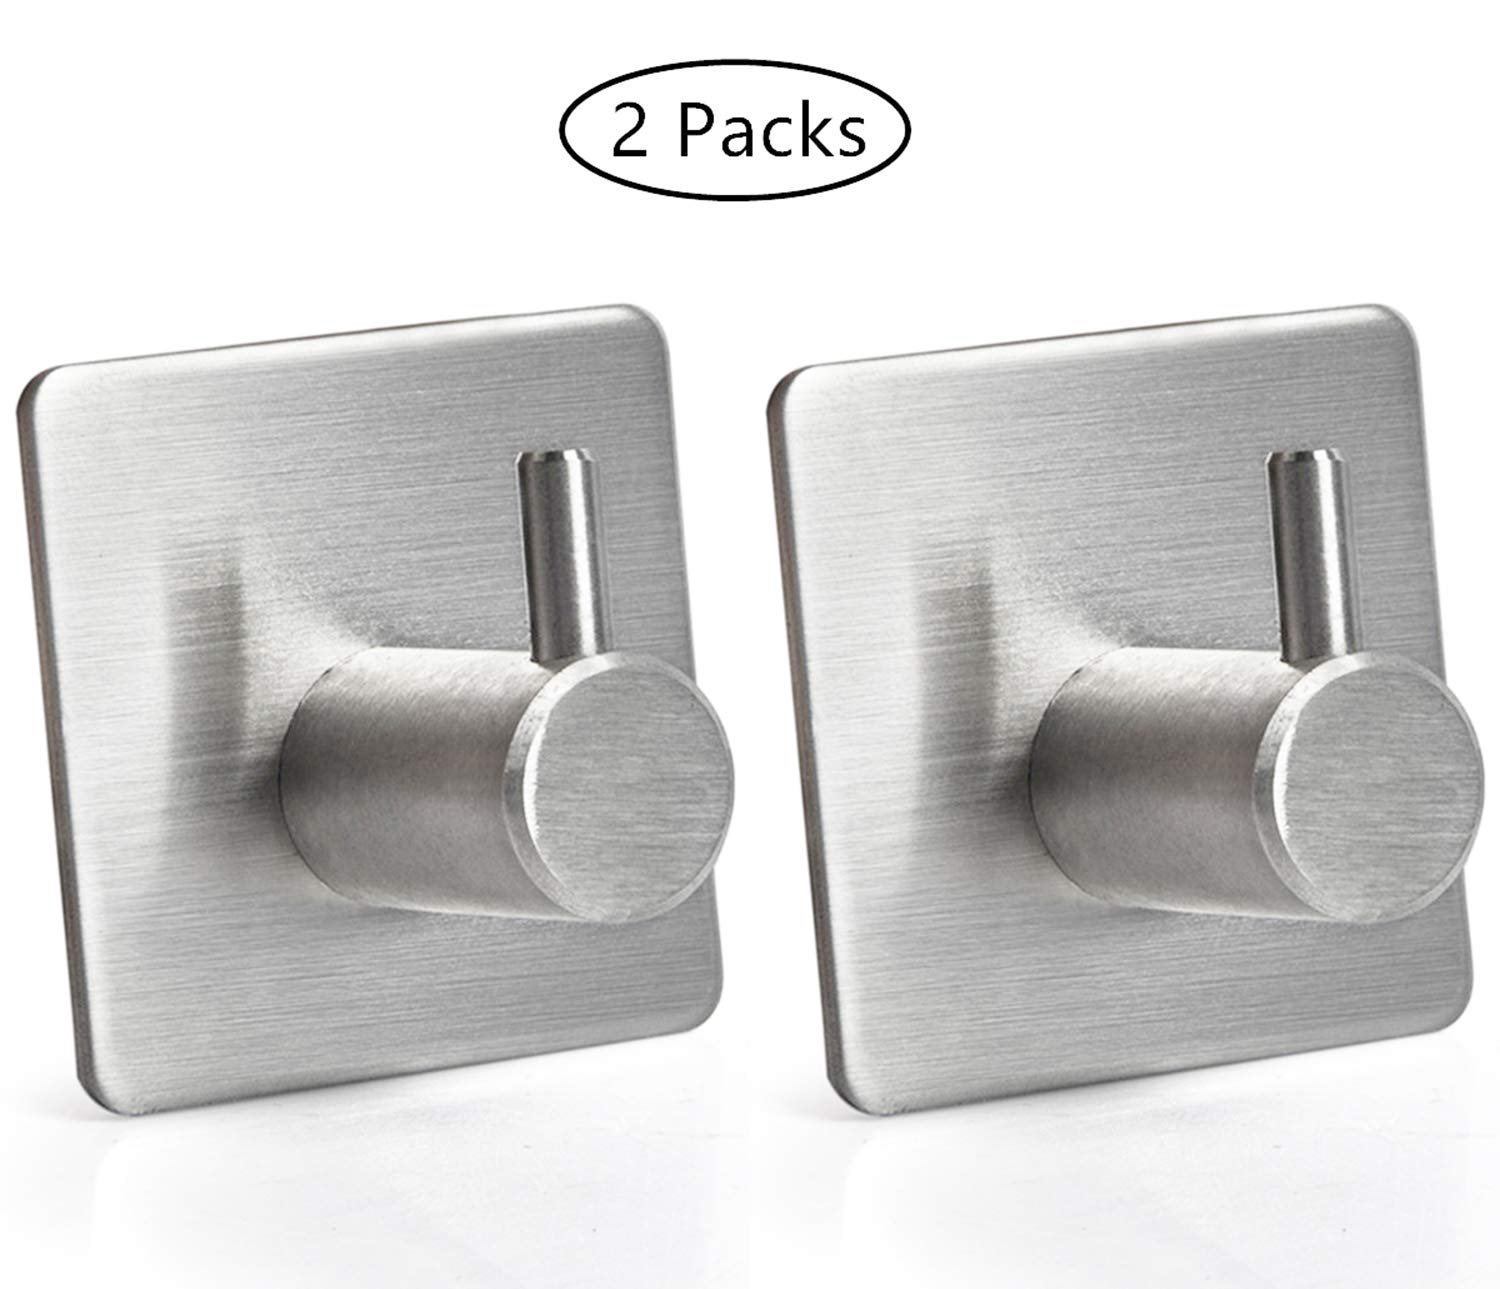 Concus T High Load Bearing Self Adhesive Brushed Stainless Steel Waterproof Hook for Keys Towel Clothes and Tools